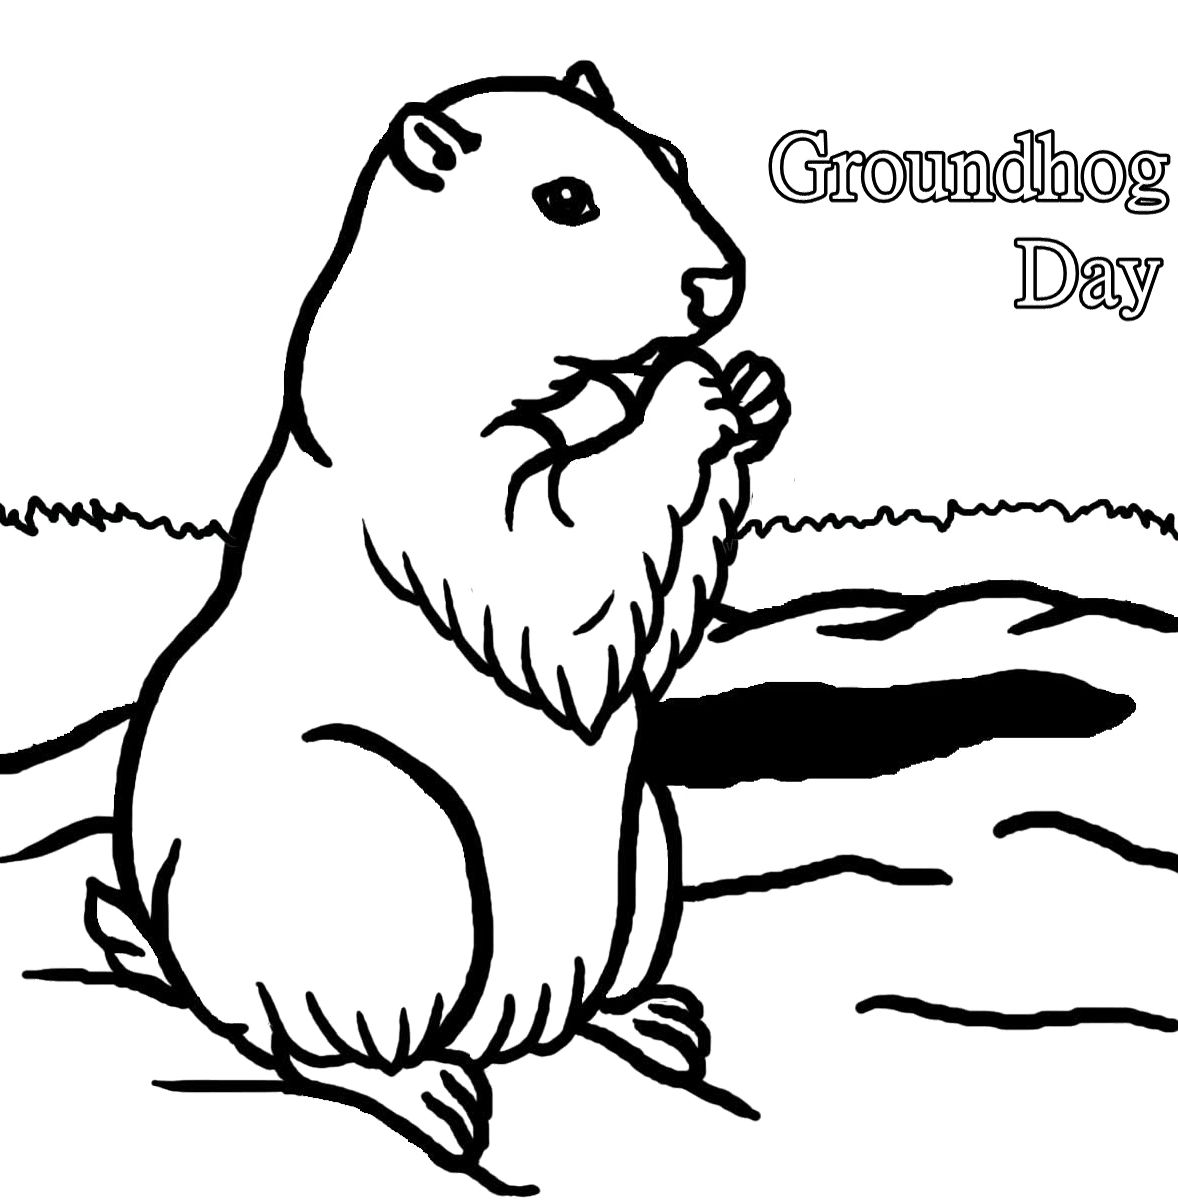 A Cute Groundhog The Animal Coloring Pages Animal Coloring Pages Coloring Pages Groundhog Day [ 1200 x 1178 Pixel ]